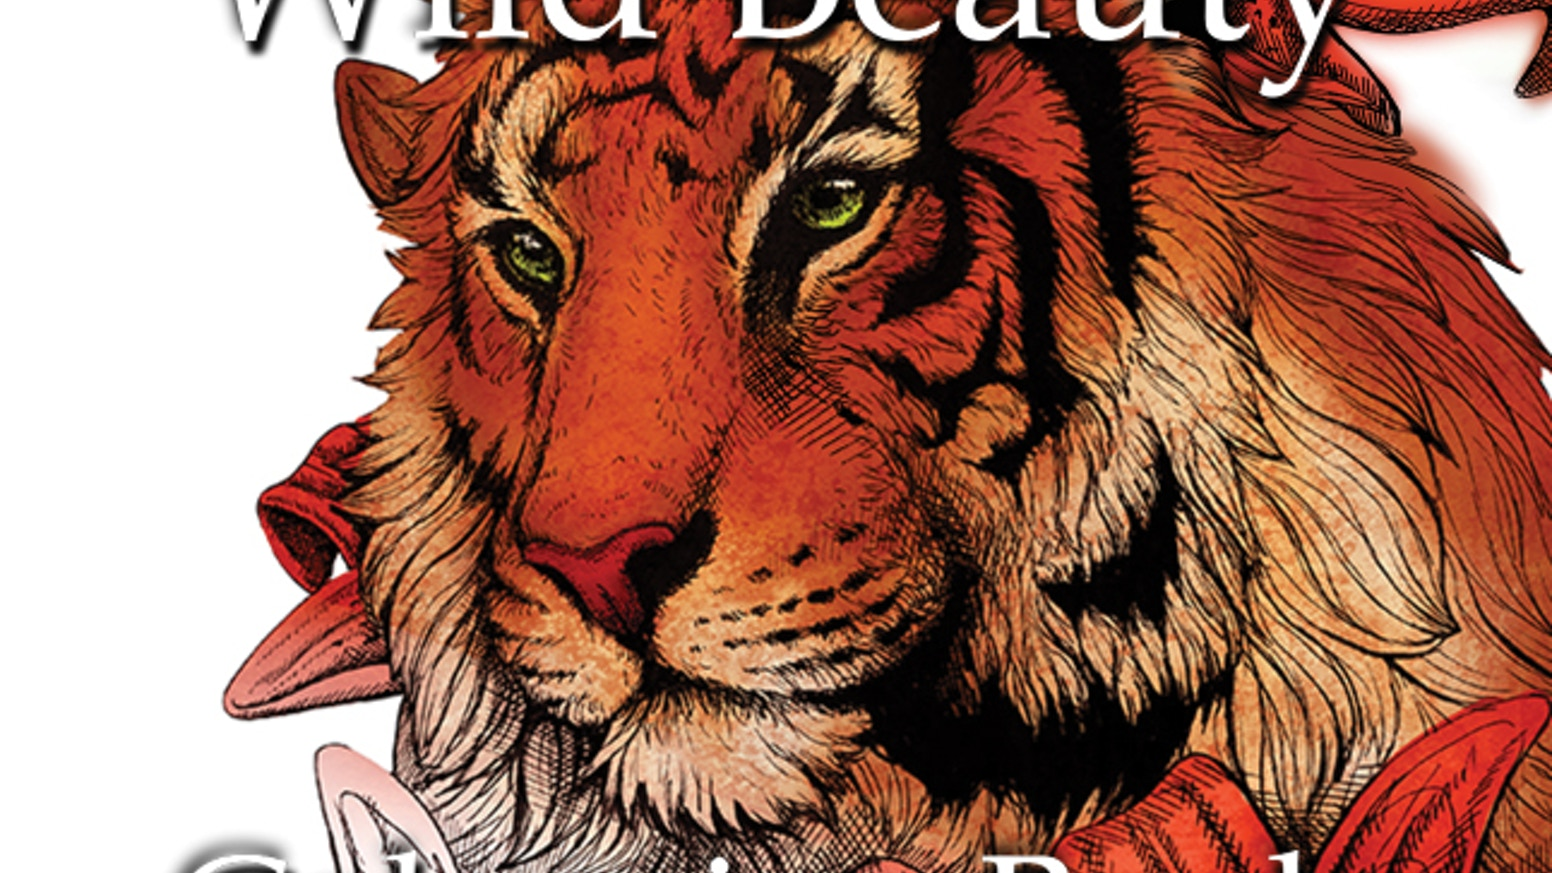 Wild Beauty - An Adult Coloring Book by Danielle Trudeau Studios ...